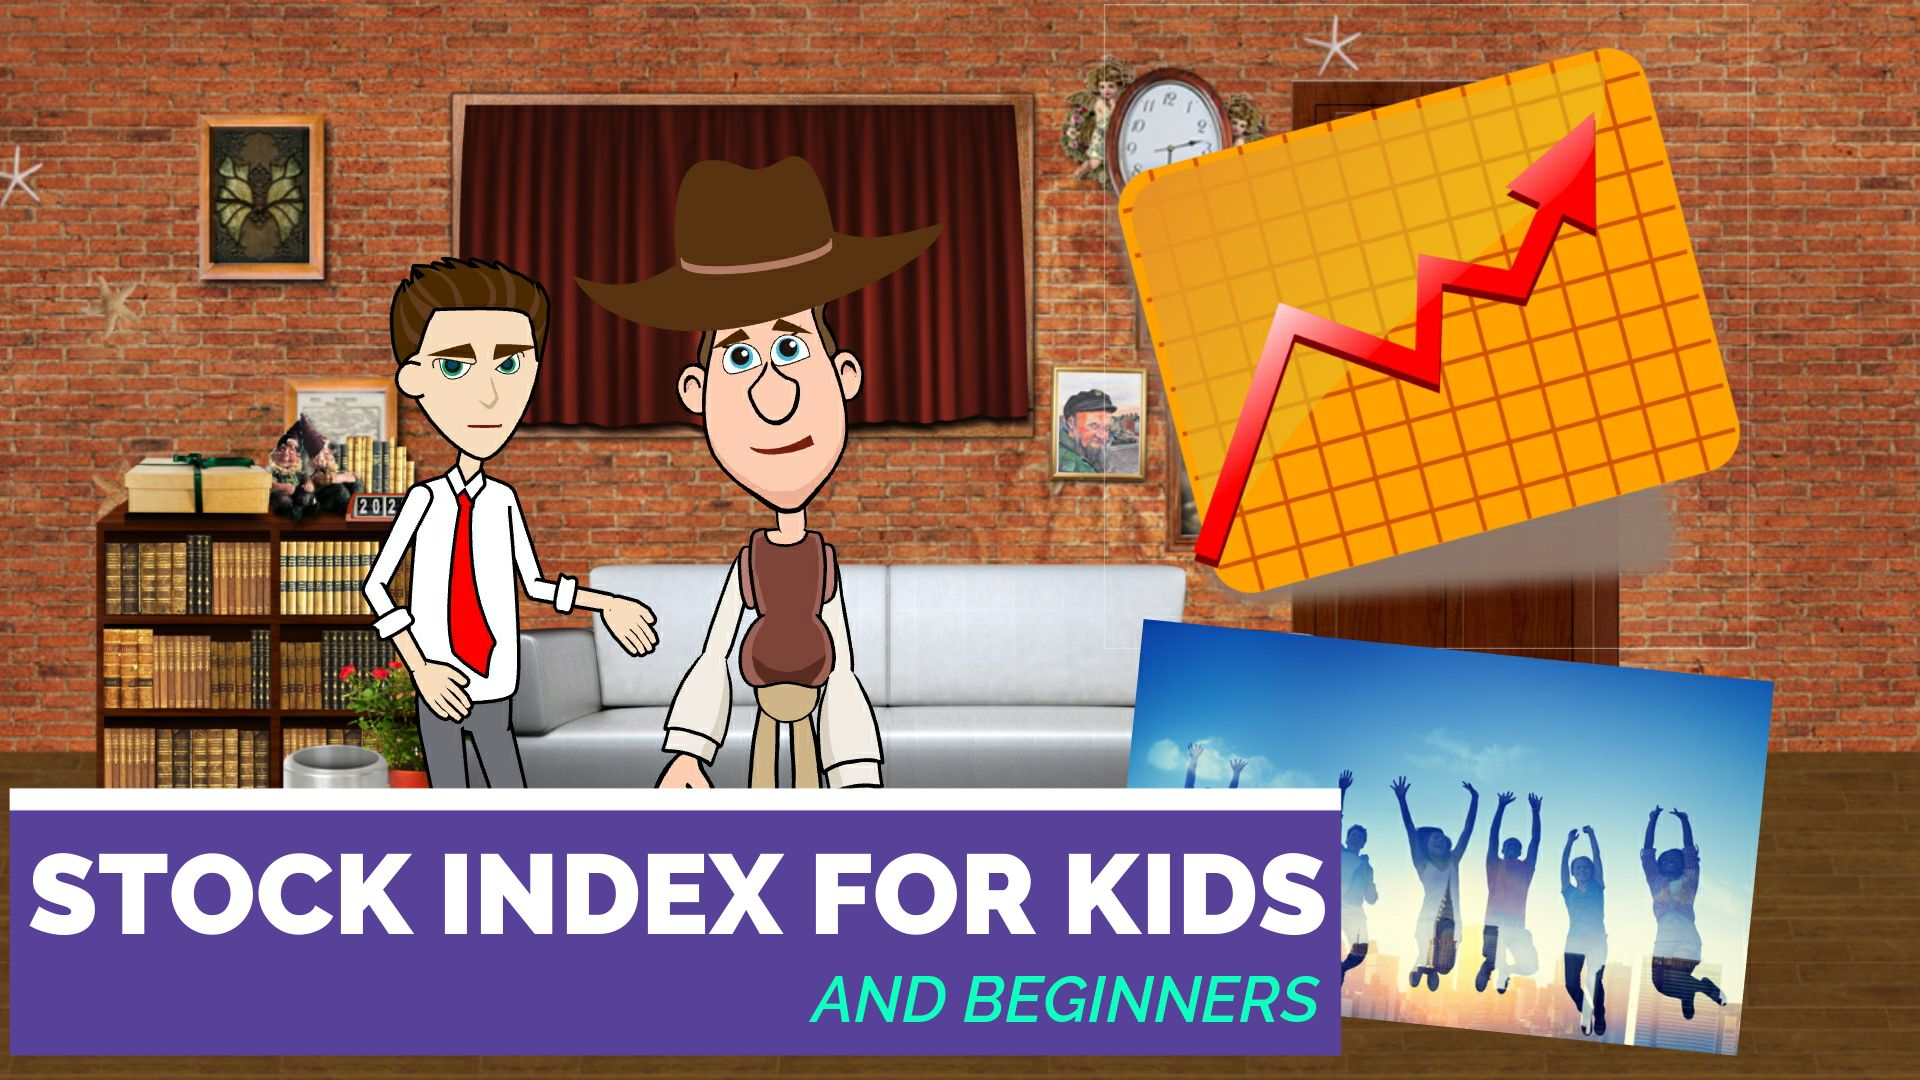 Stock Index for Kids Teens and Beginners